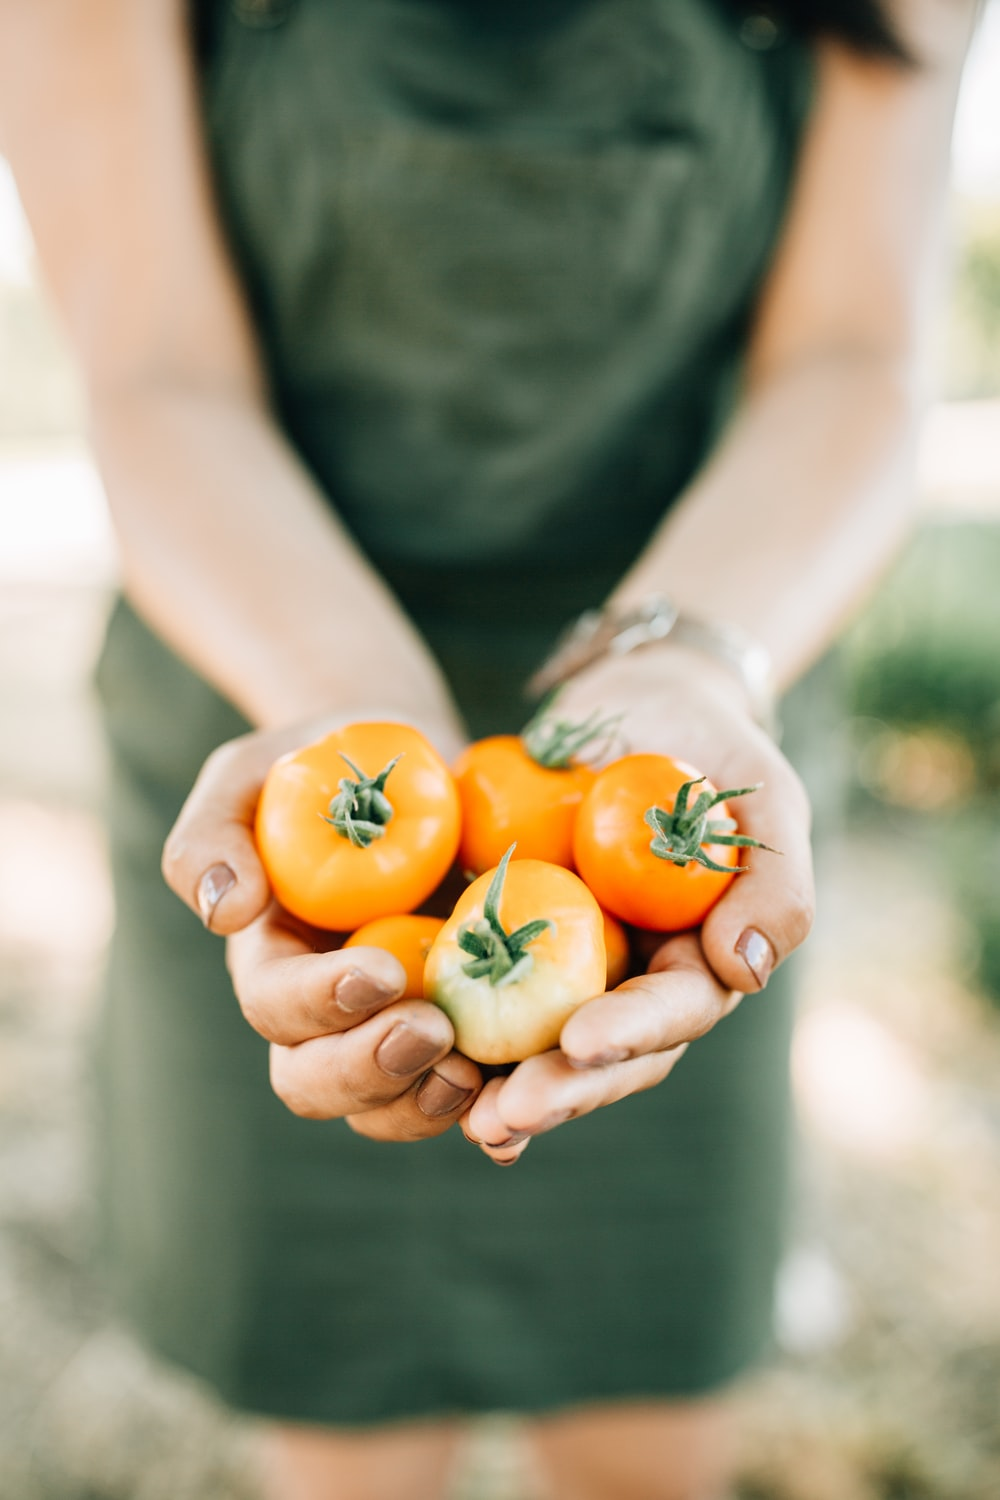 red tomatoes on person's palm